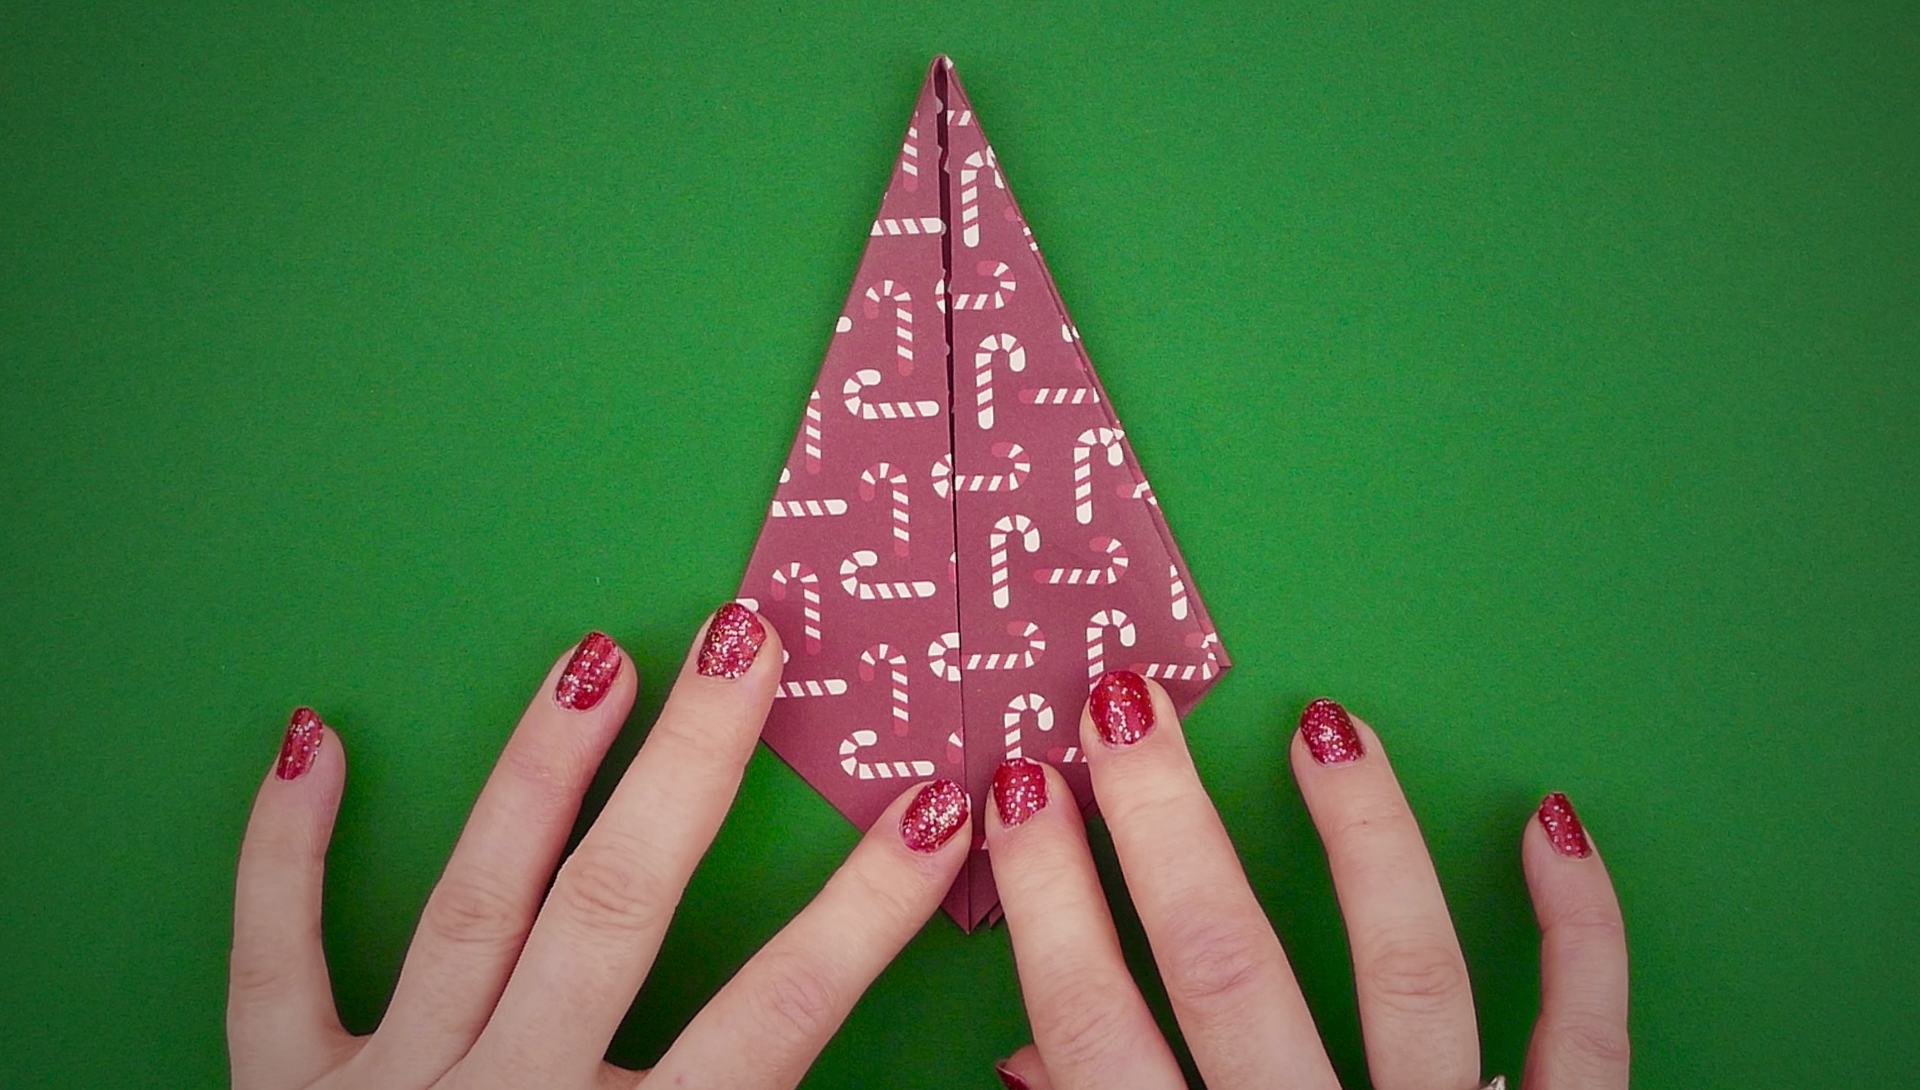 25 Days of Christmas - Have A Totally Unique Christmas With These DIY Tree Decorations - 1012